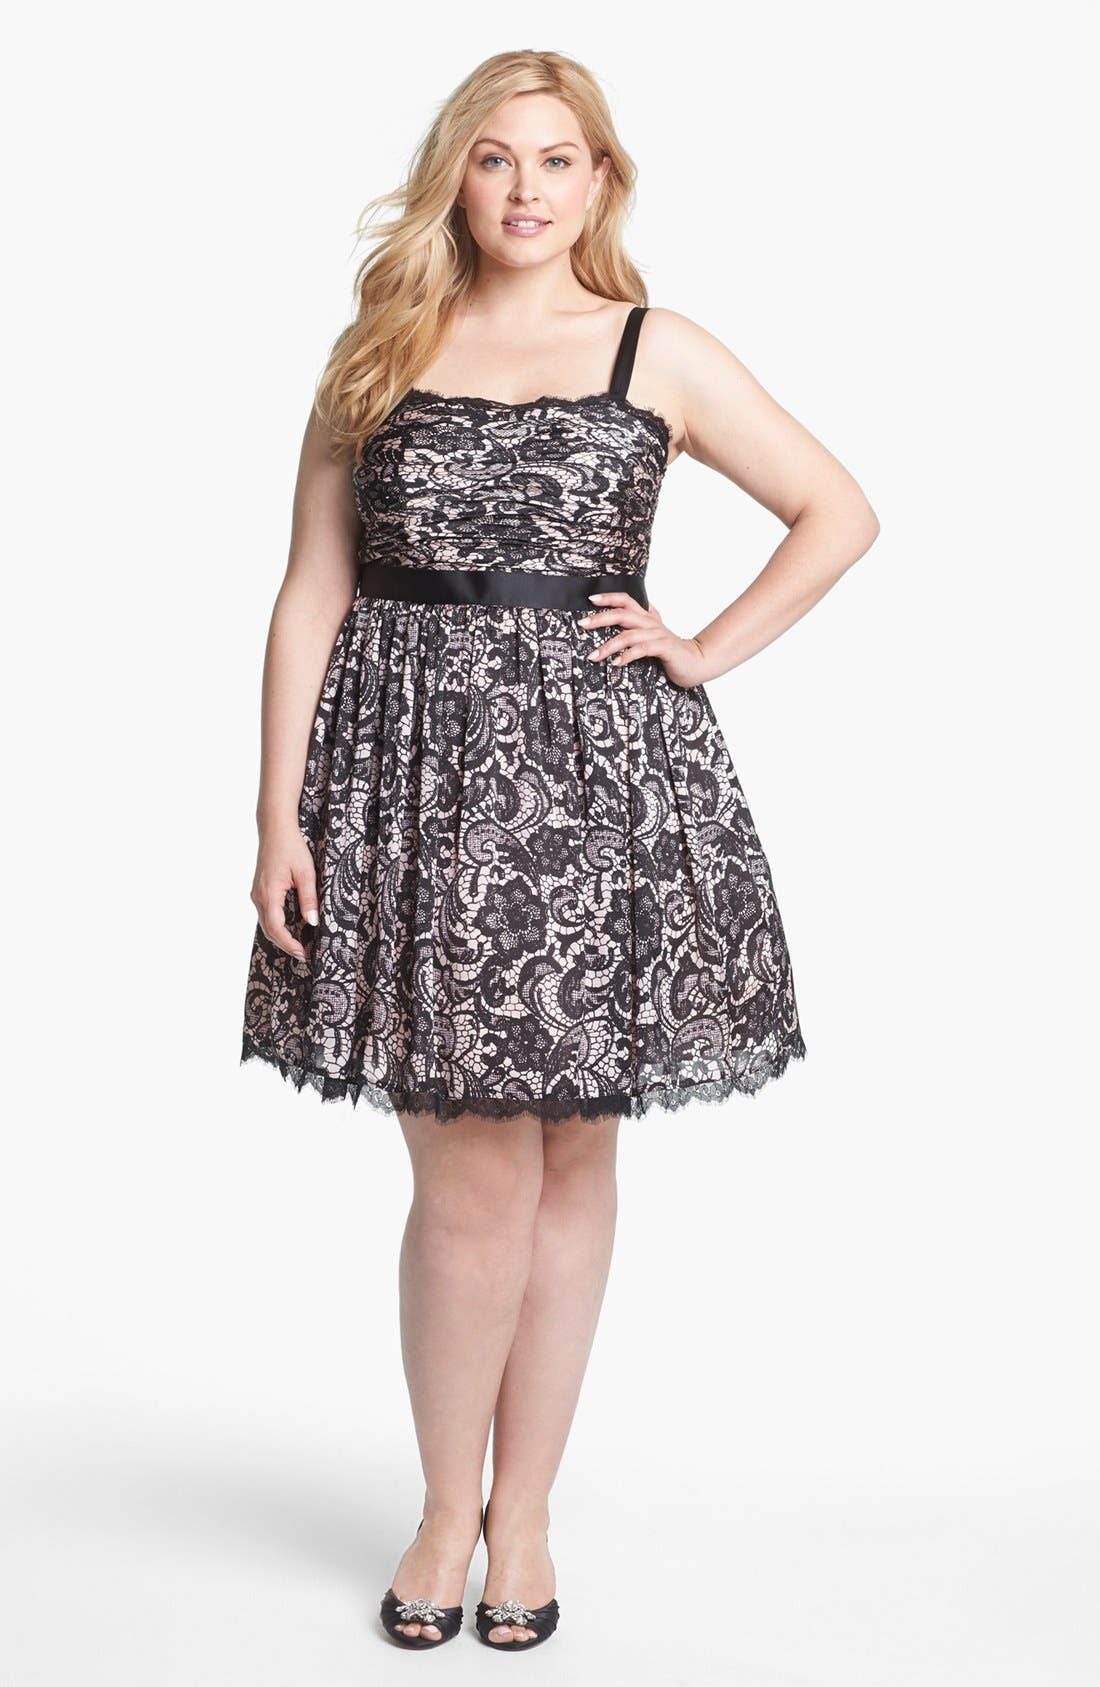 Alternate Image 1 Selected - Adrianna Papell Lace Print Tulle Fit & Flare Dress (Plus Size)